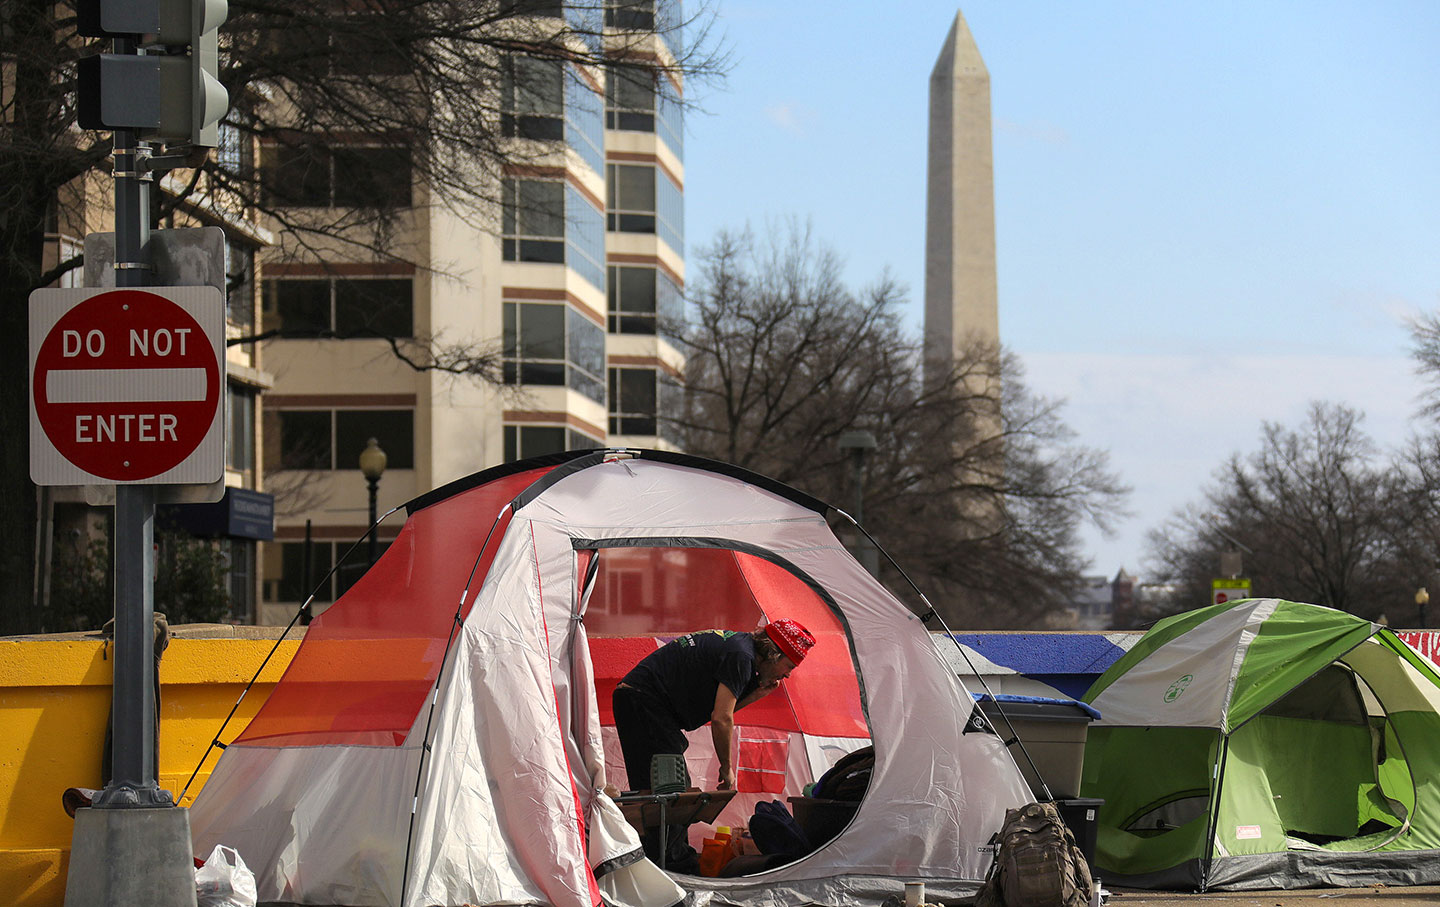 homeless-tent-washington-monument-ap-img